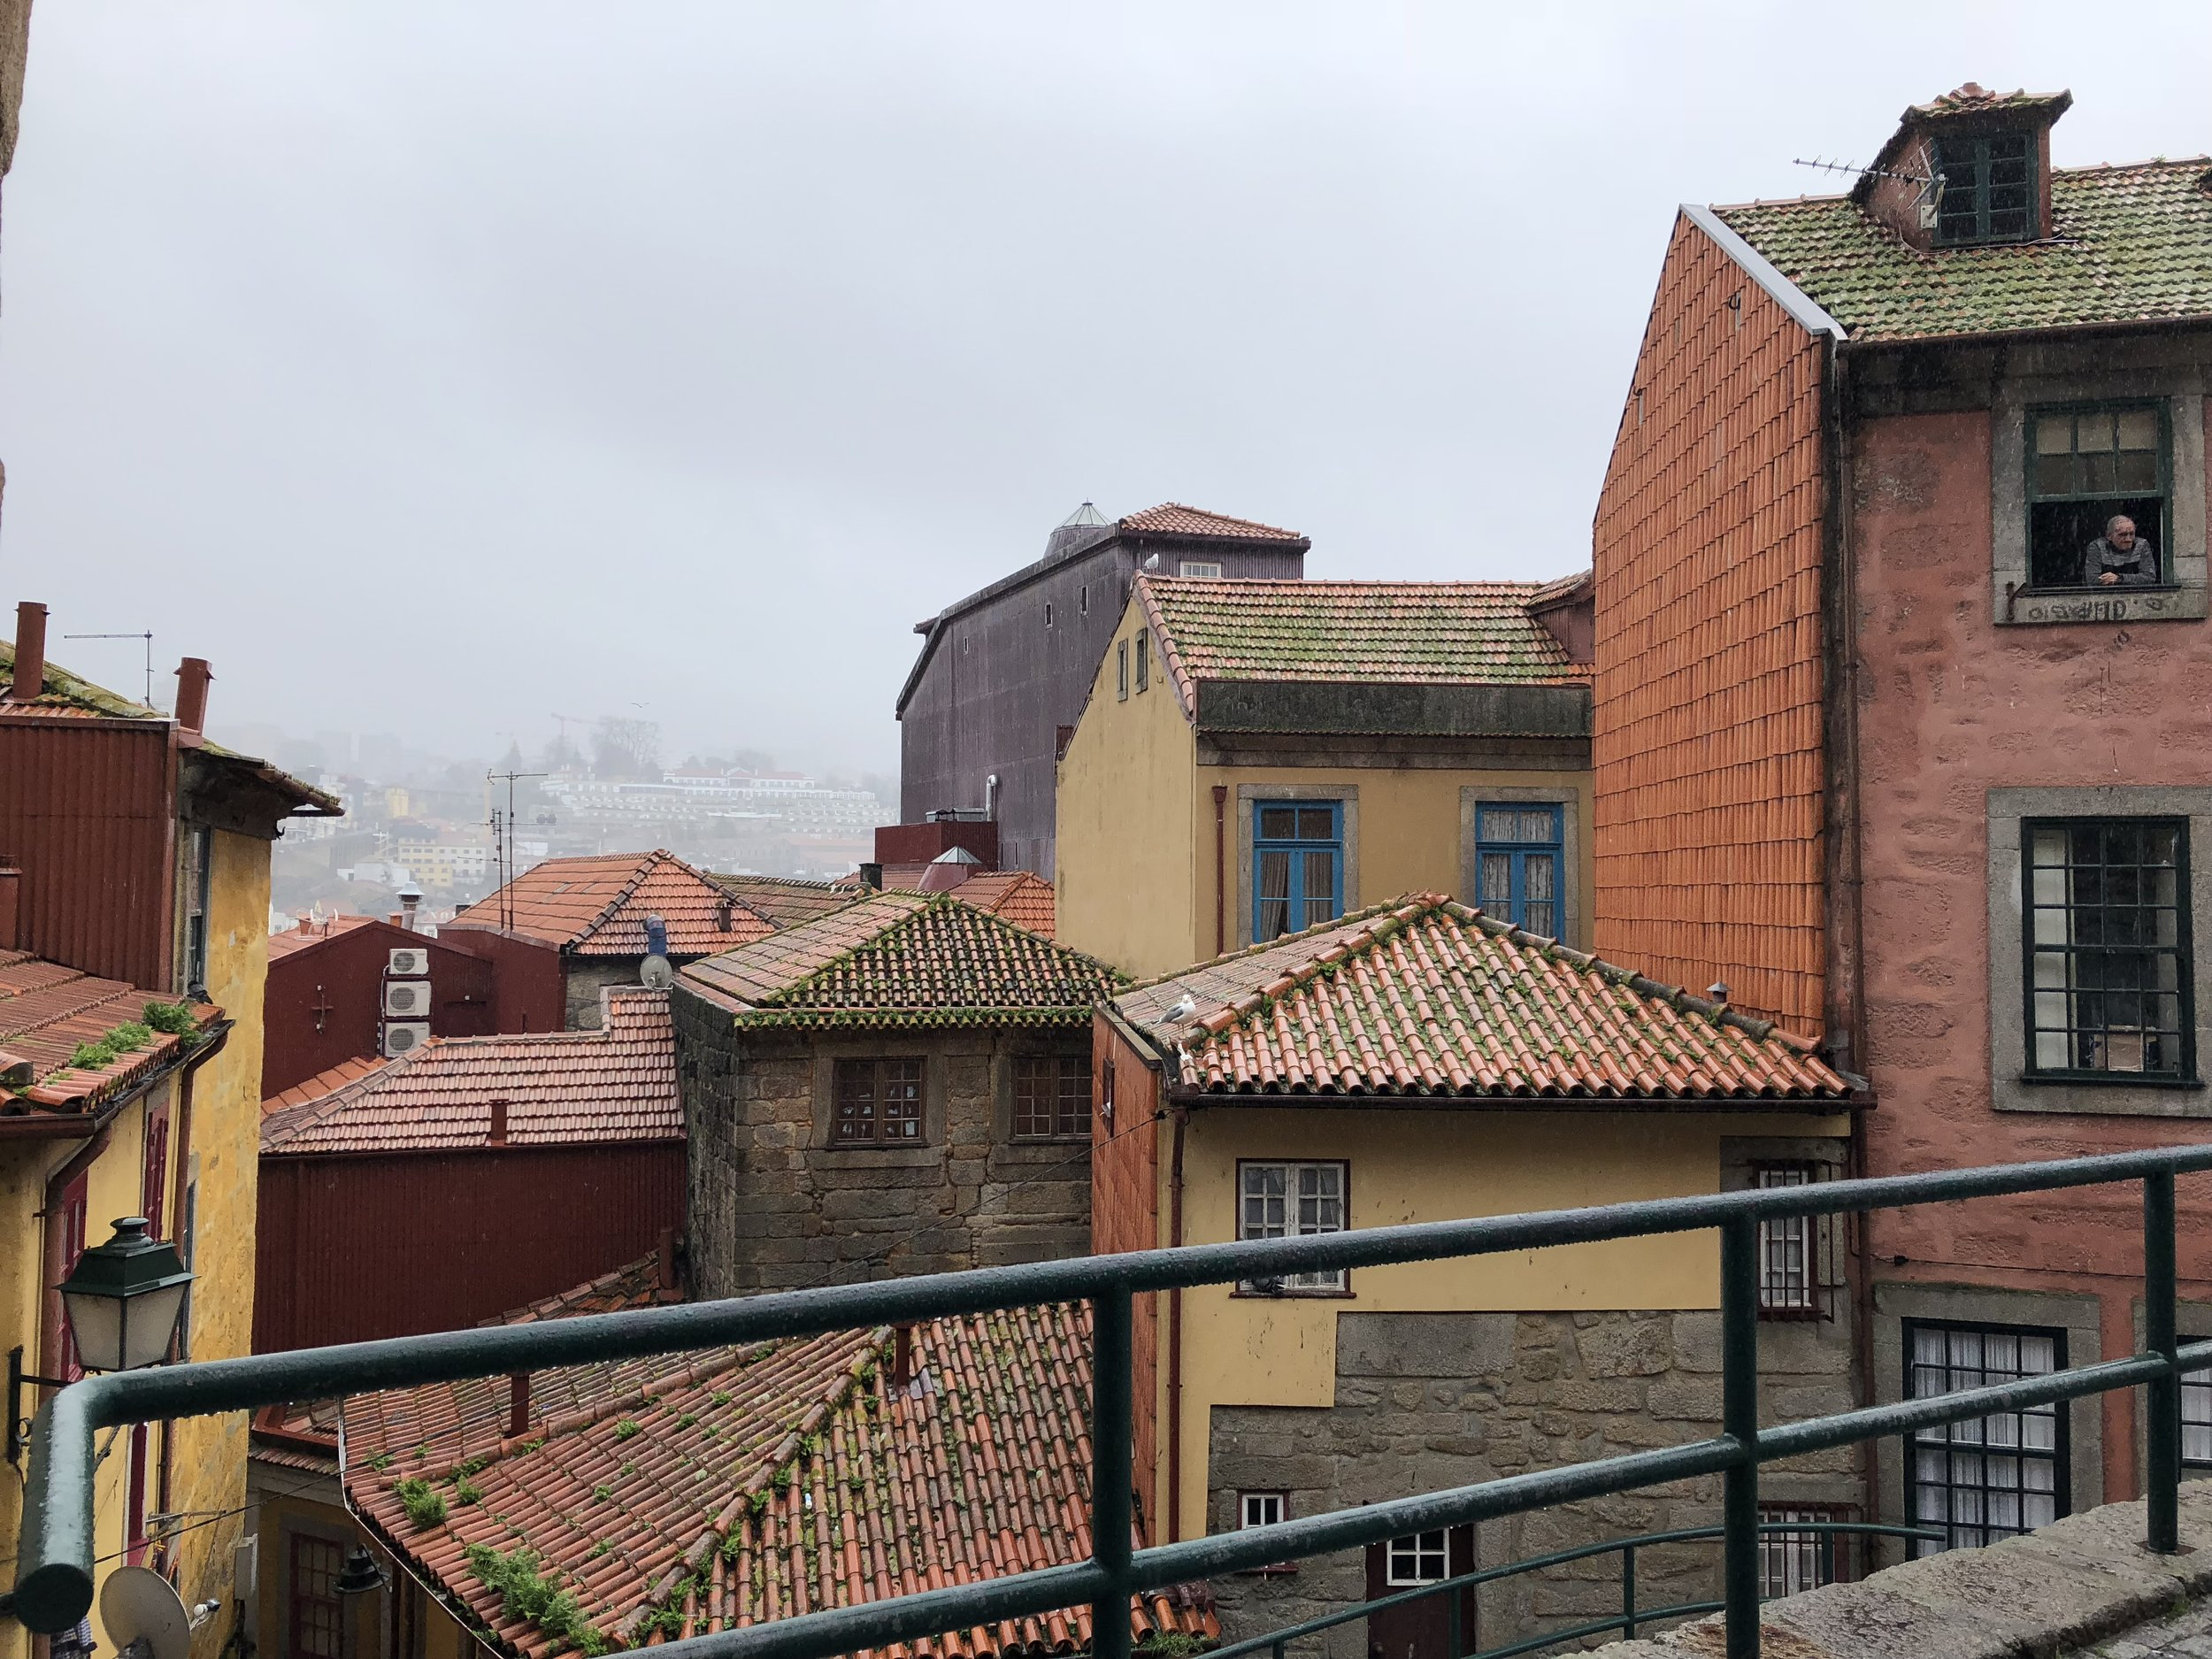 Colorful rooftop shot of Porto on a raining day. Note the local resident smoking out of his window in the top right.